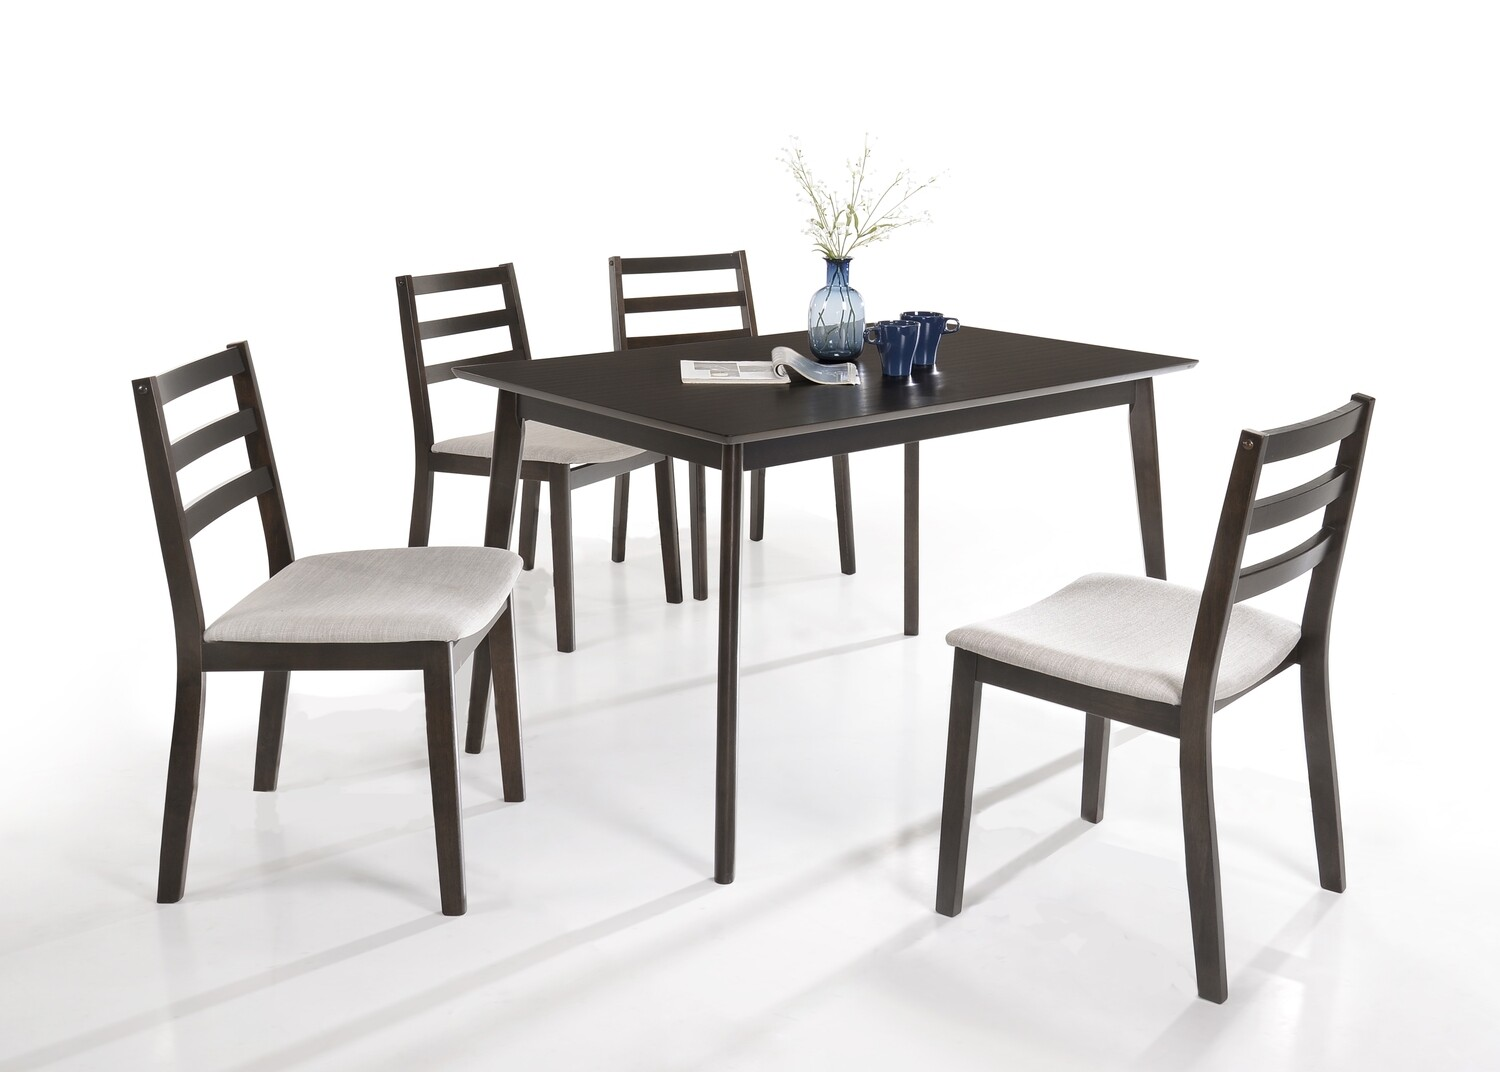 1+4 Wooden Dining Set